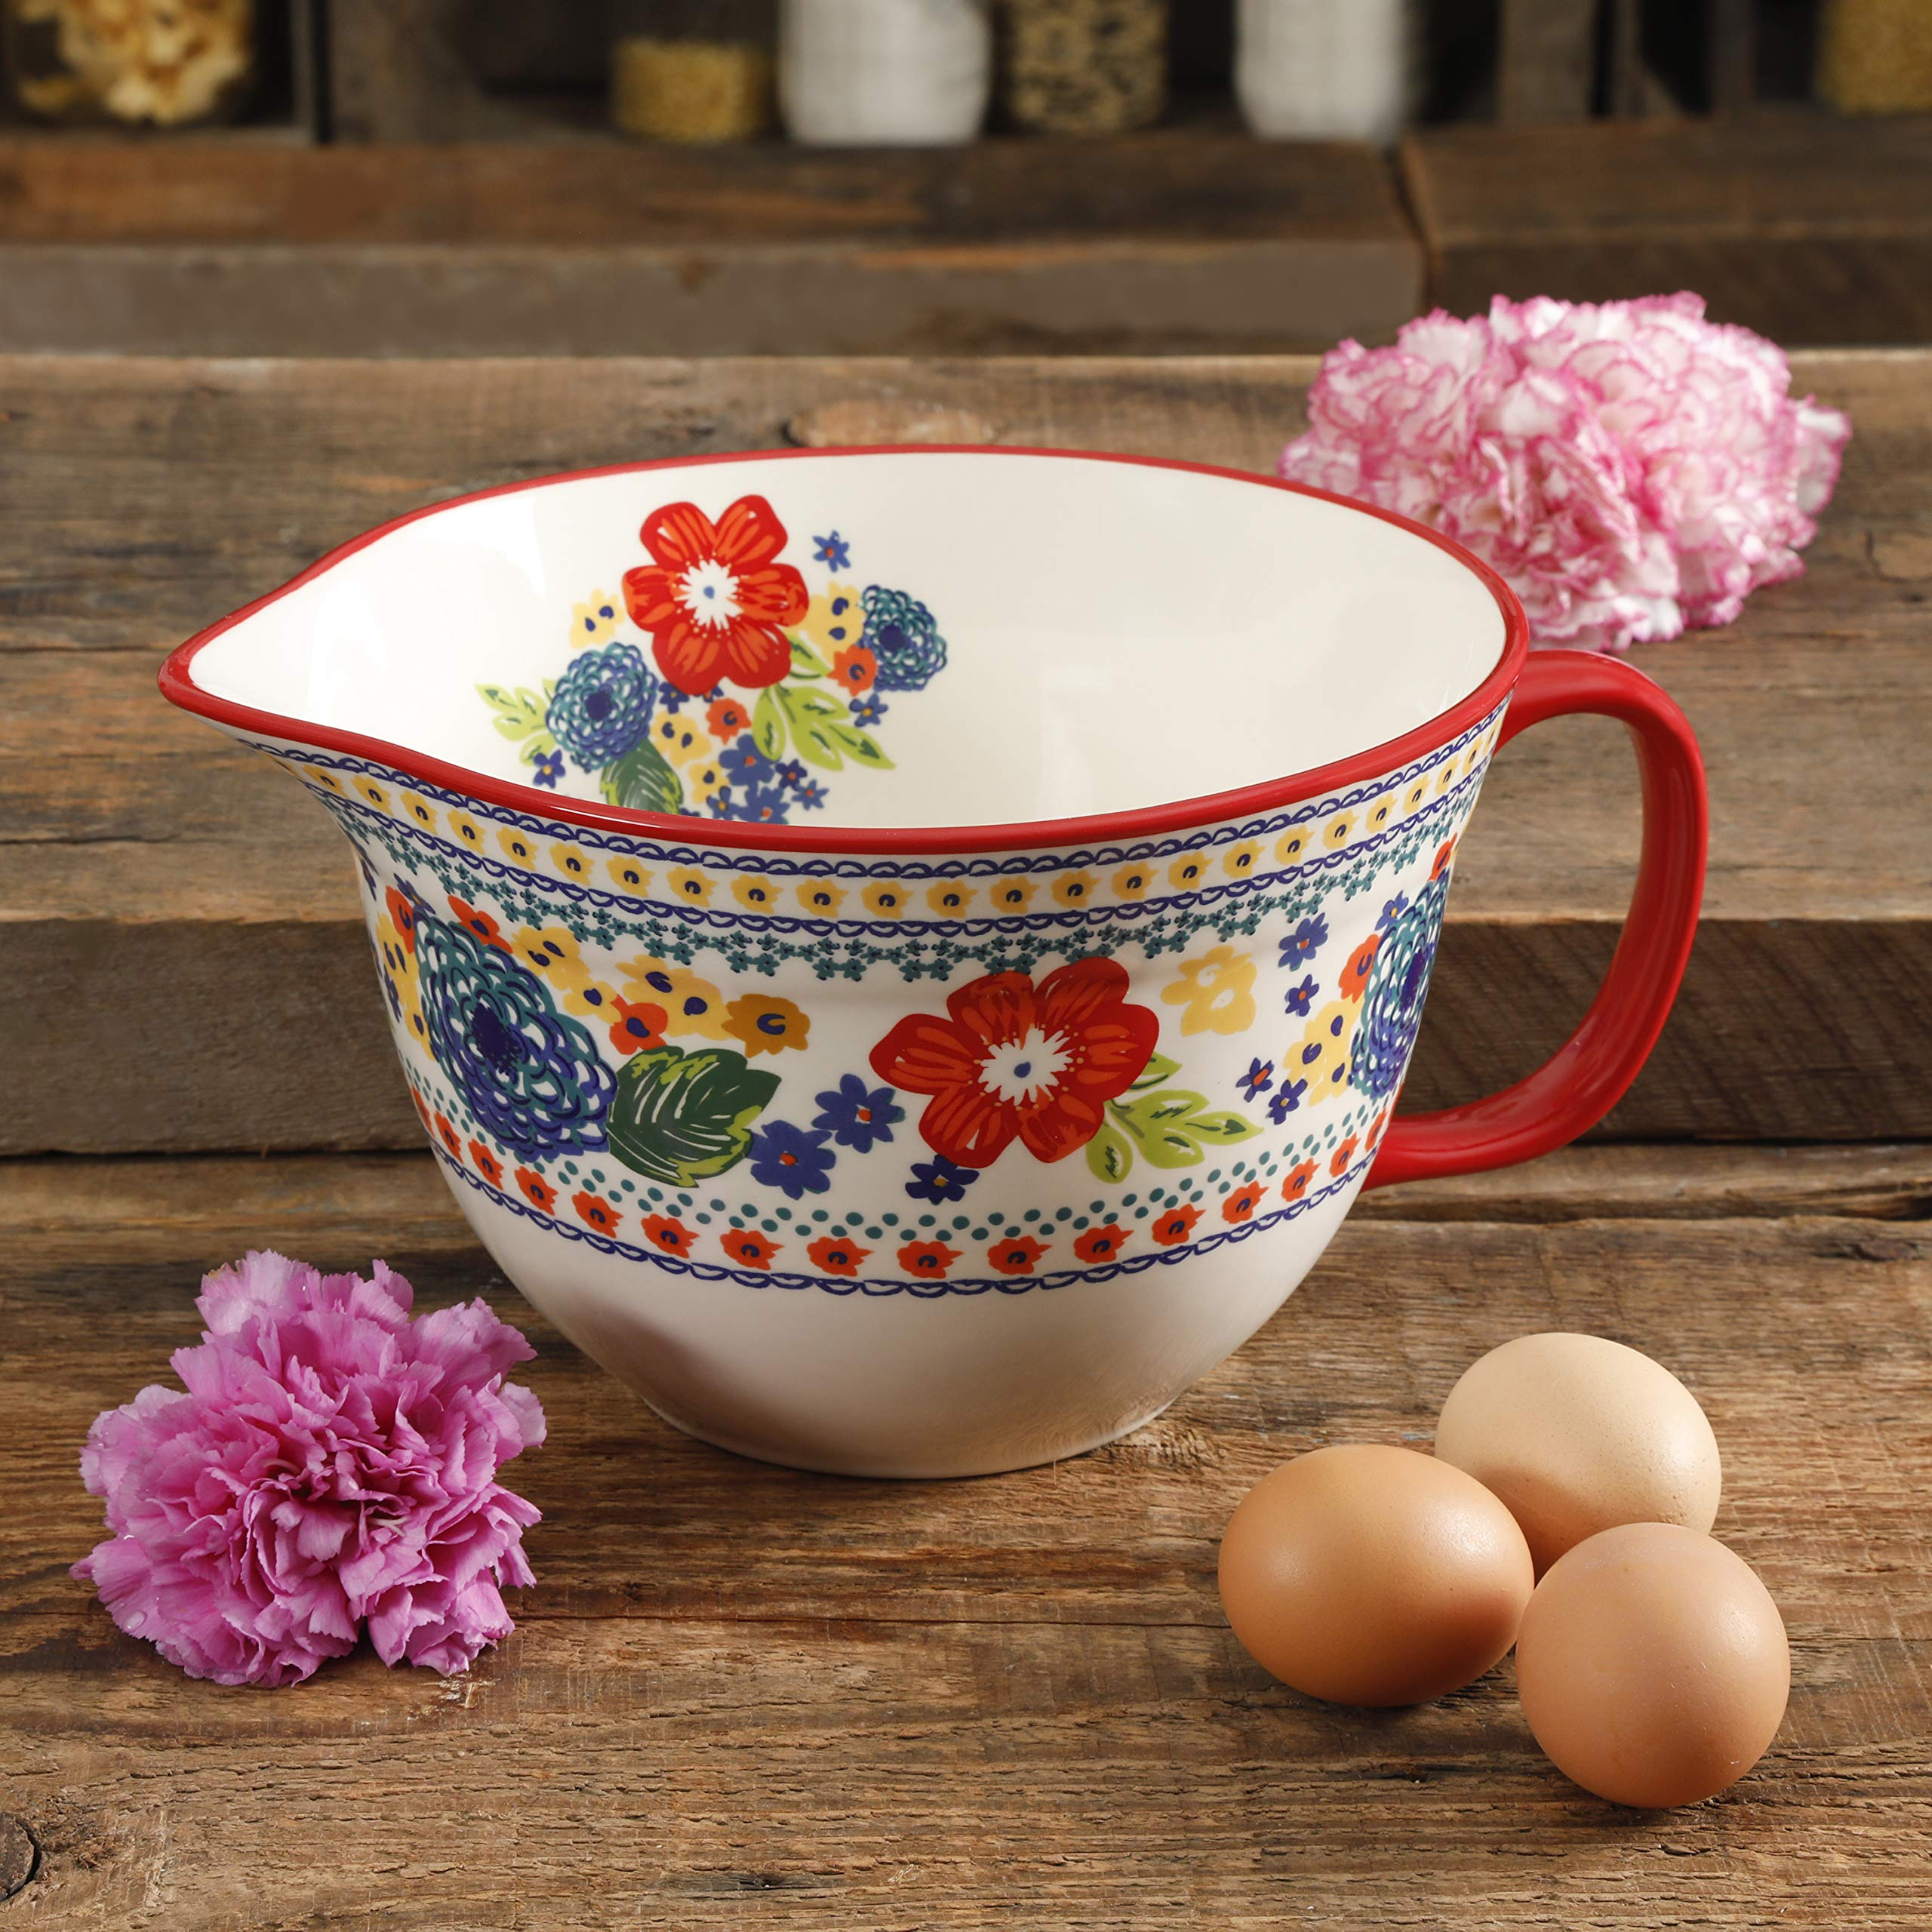 The Pioneer Woman 3.3 Quart Dazzling Dahlias Batter Bowl, 1-Piece bundle with The Pioneer Woman 2-Piece Rectangular Ruffle Top Ceramic Bakeware Set'' by The Pioneer Woman (Image #5)